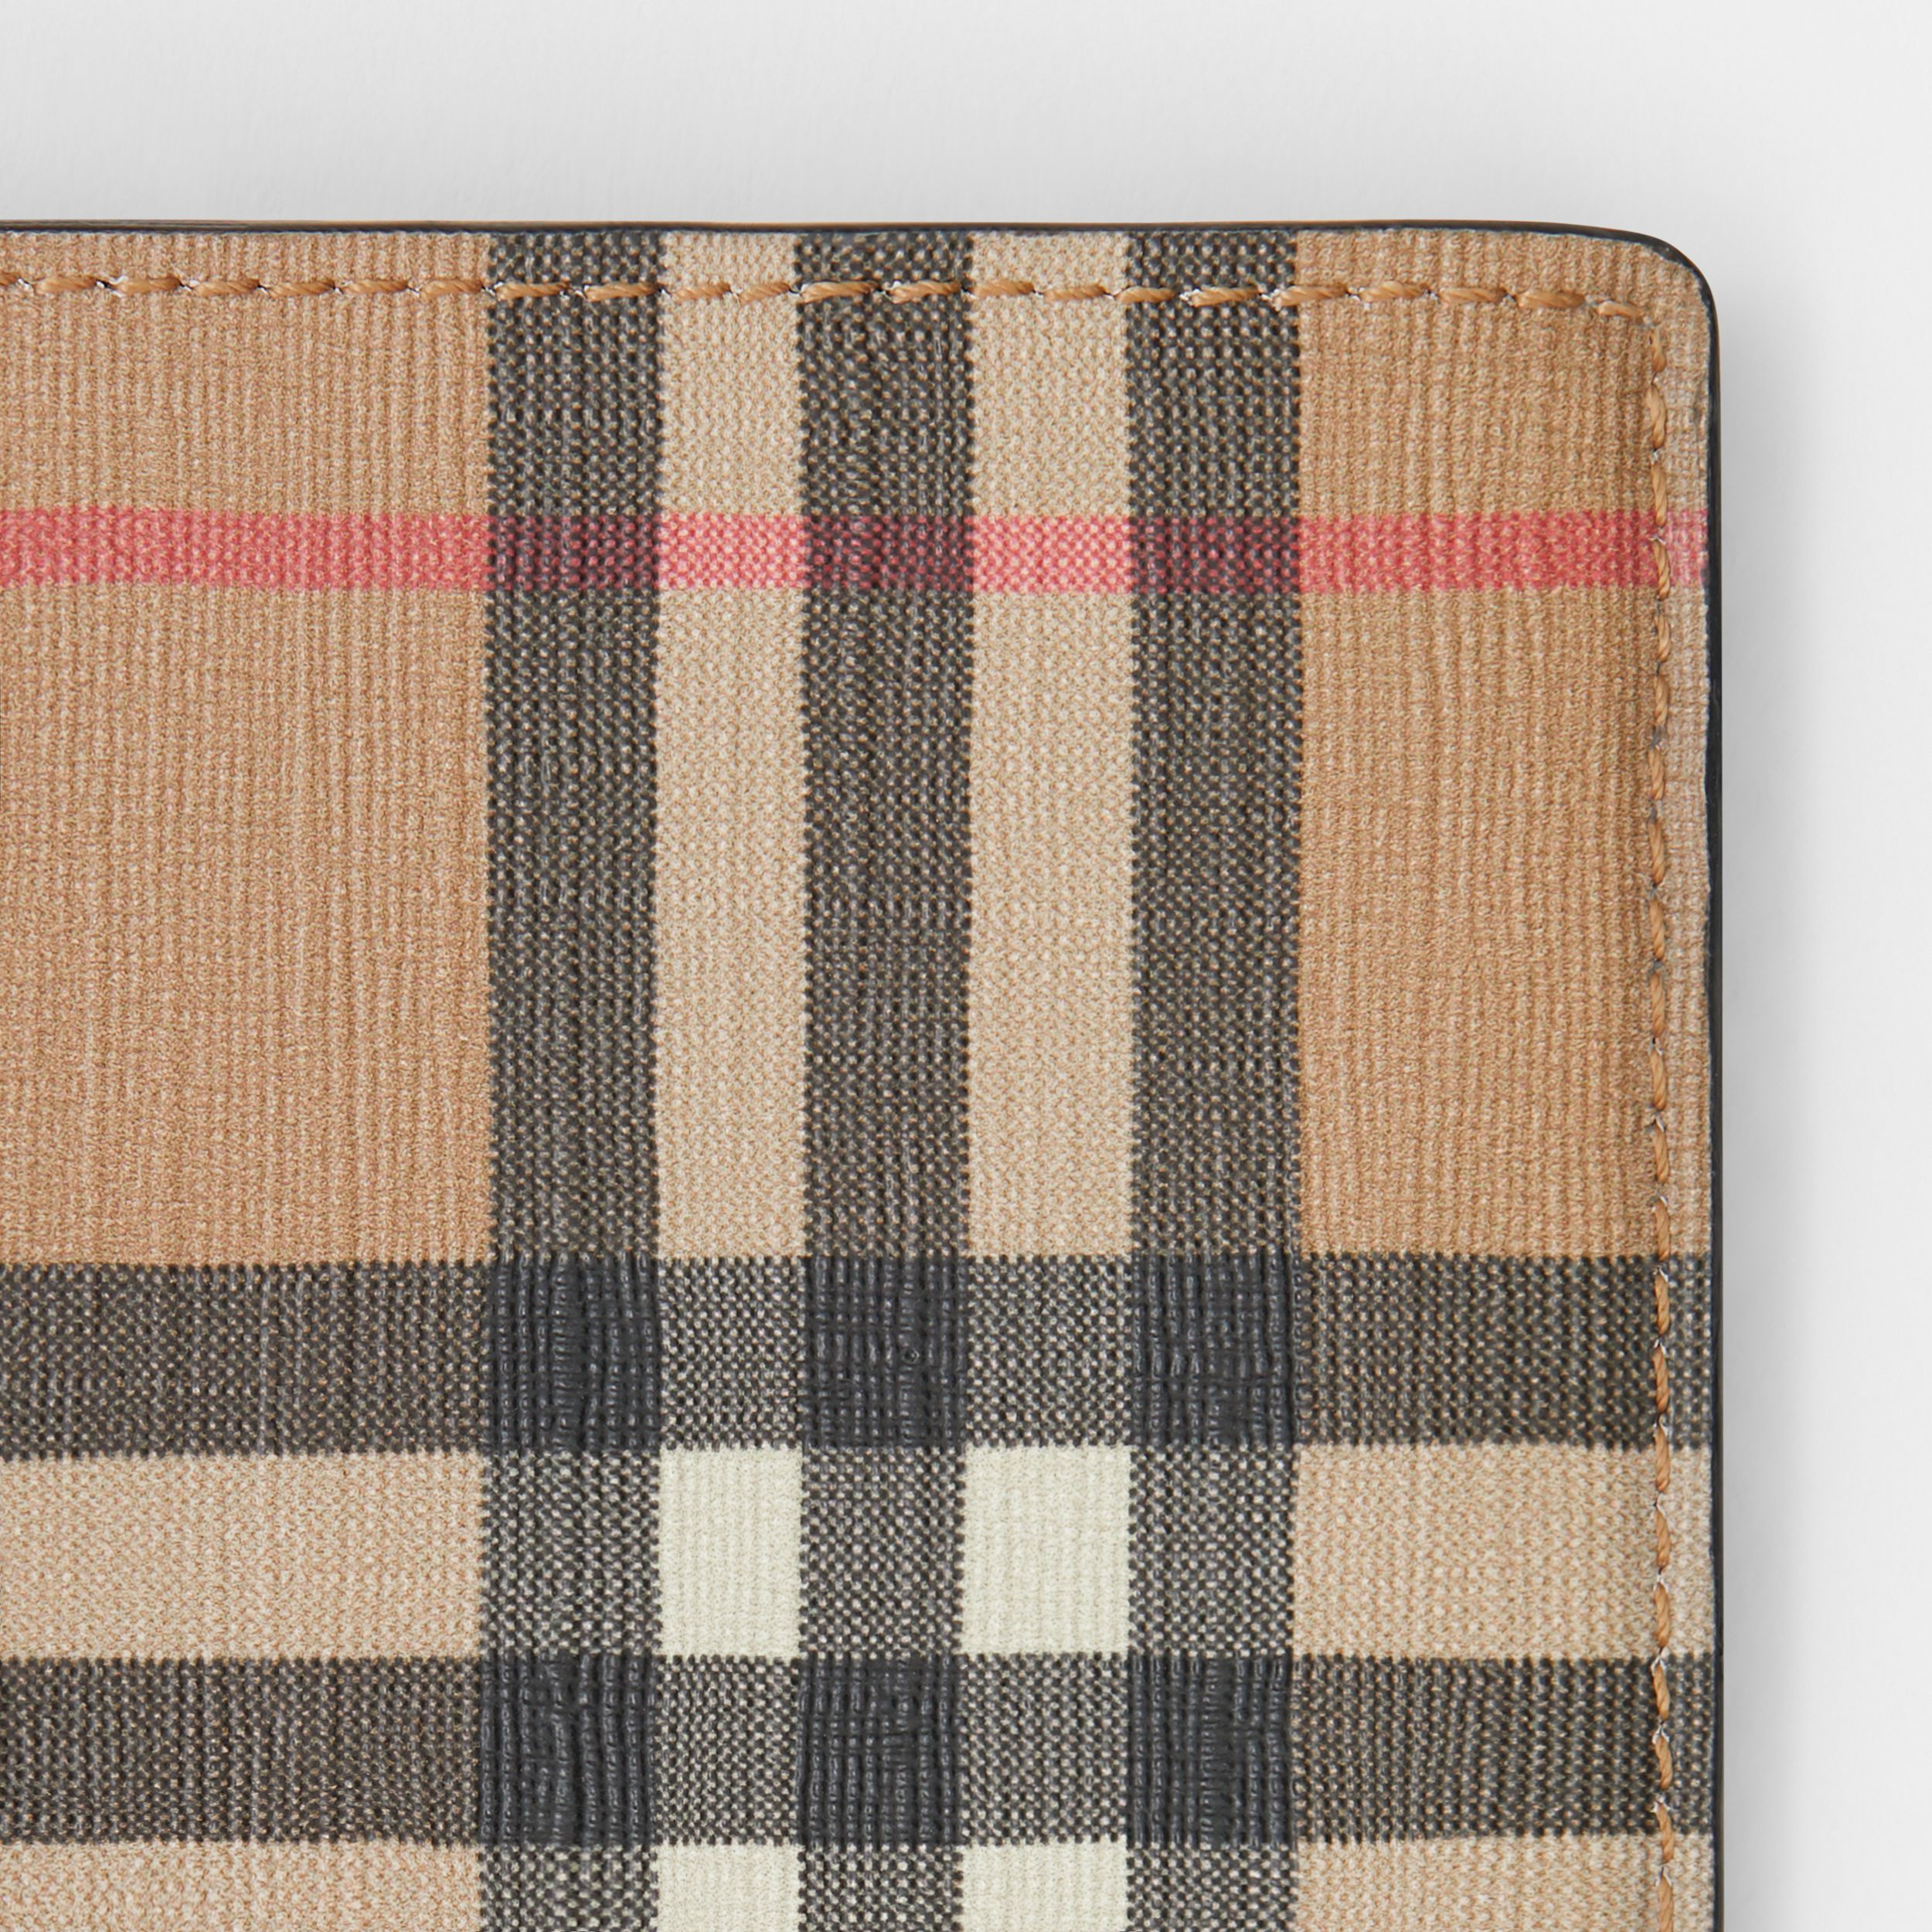 Vintage Check E-canvas International Bifold Wallet in Archive Beige - Men | Burberry Canada - 2